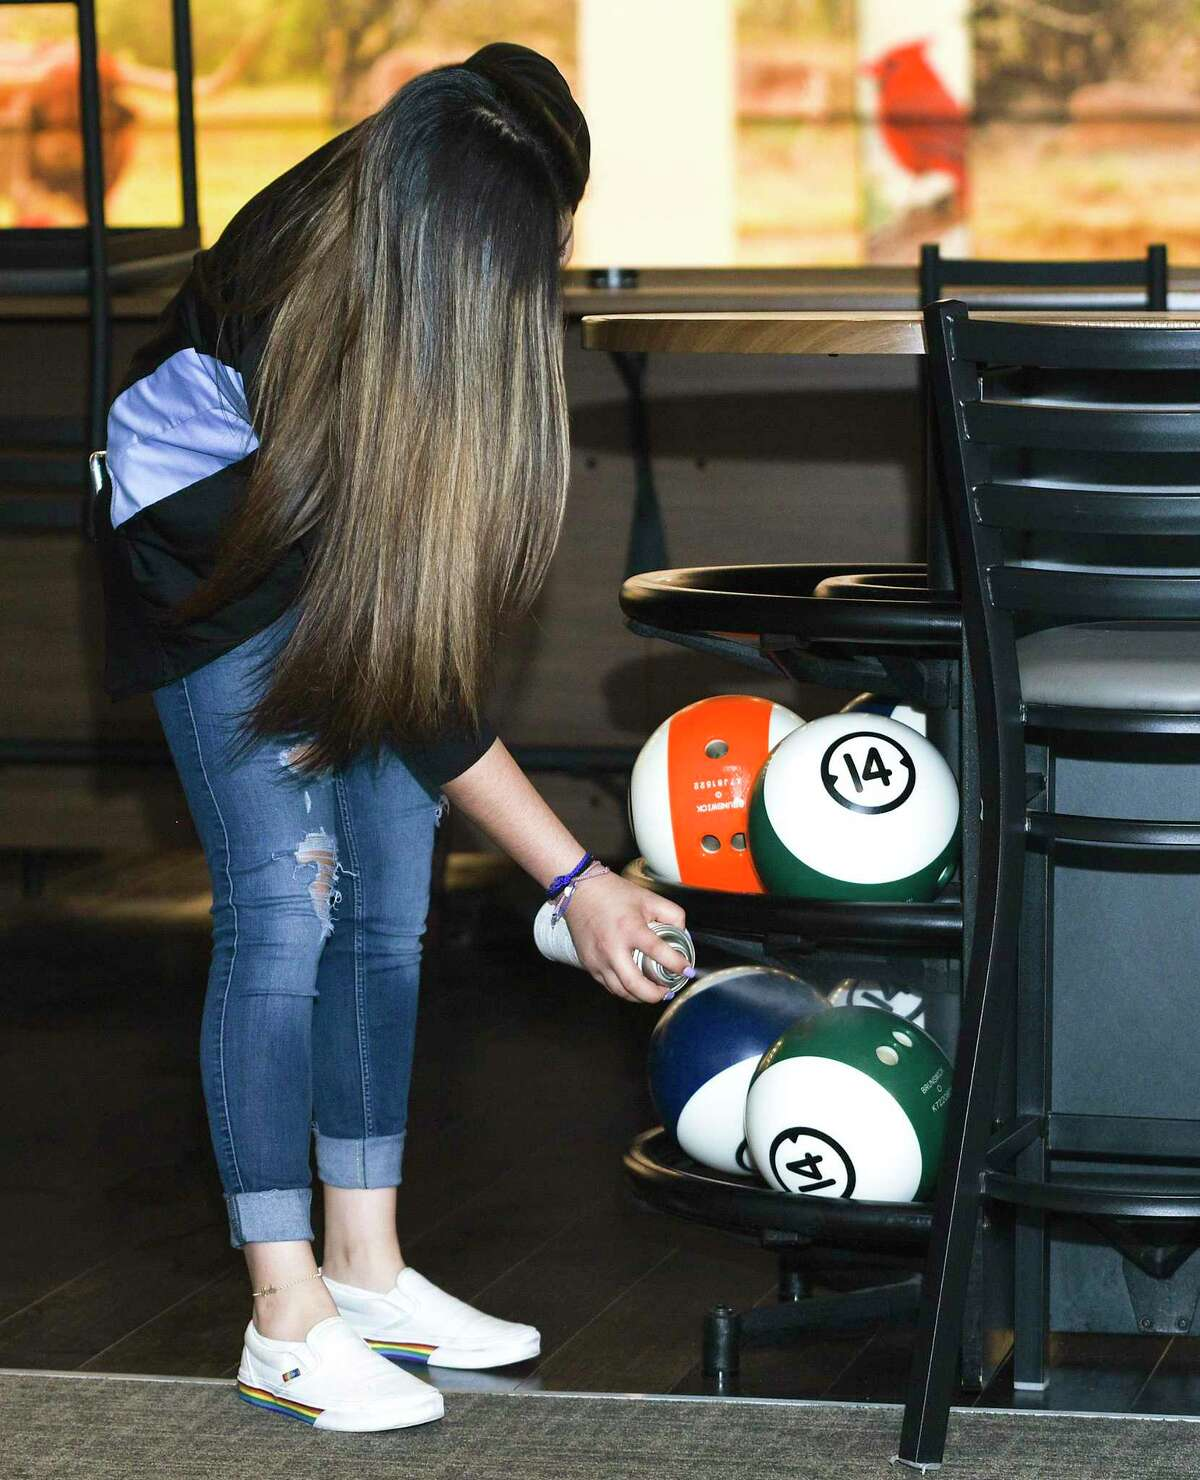 Pla-Mor employee Karla Rivas disinfects bowling balls prior to the entertainment center's soft opening, Thursday, May 21, 2020. Pla-Mor is set to follow social distancing guidelines as it officially open, with restrictions, on Friday.